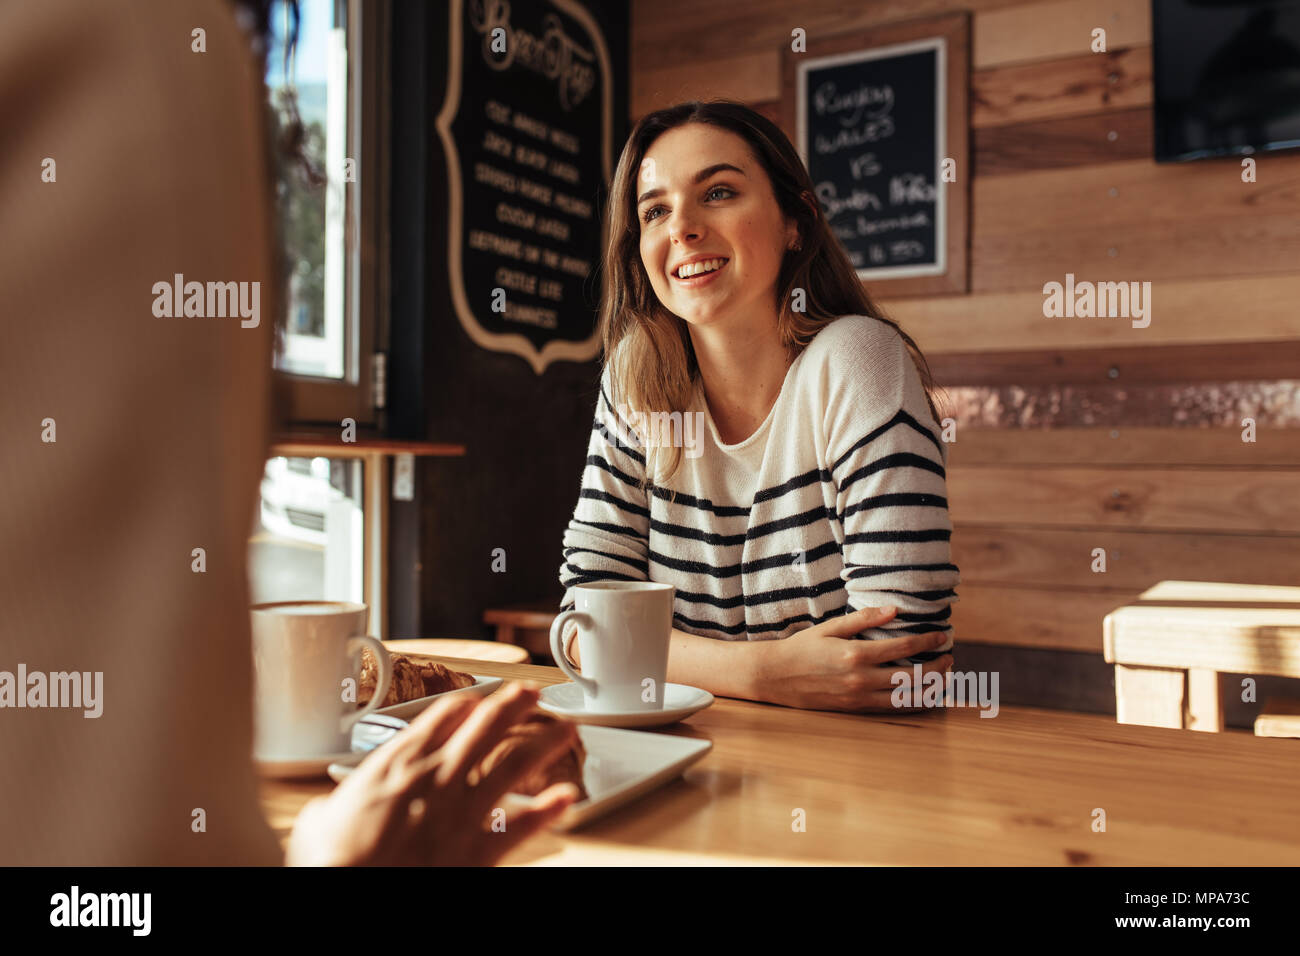 Smiling woman sitting in a restaurant talking to her friend. Friends sitting at a cafe with coffee and snacks on the table. - Stock Image